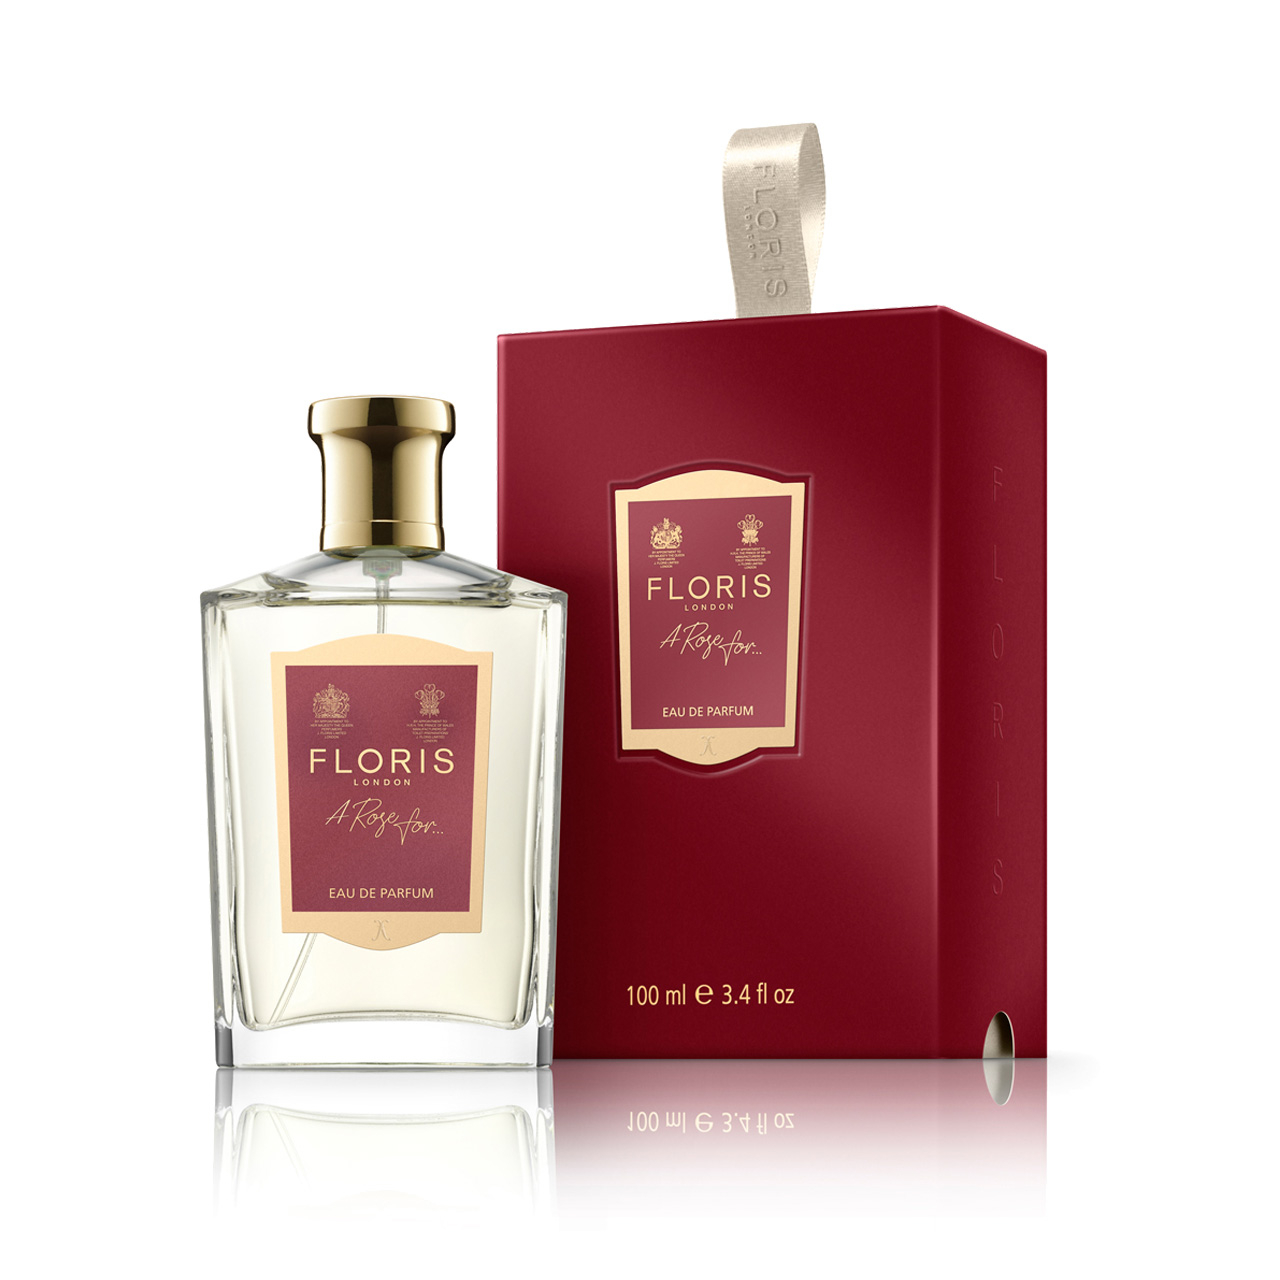 A Rose For... - Eau de Parfum - Private Collection